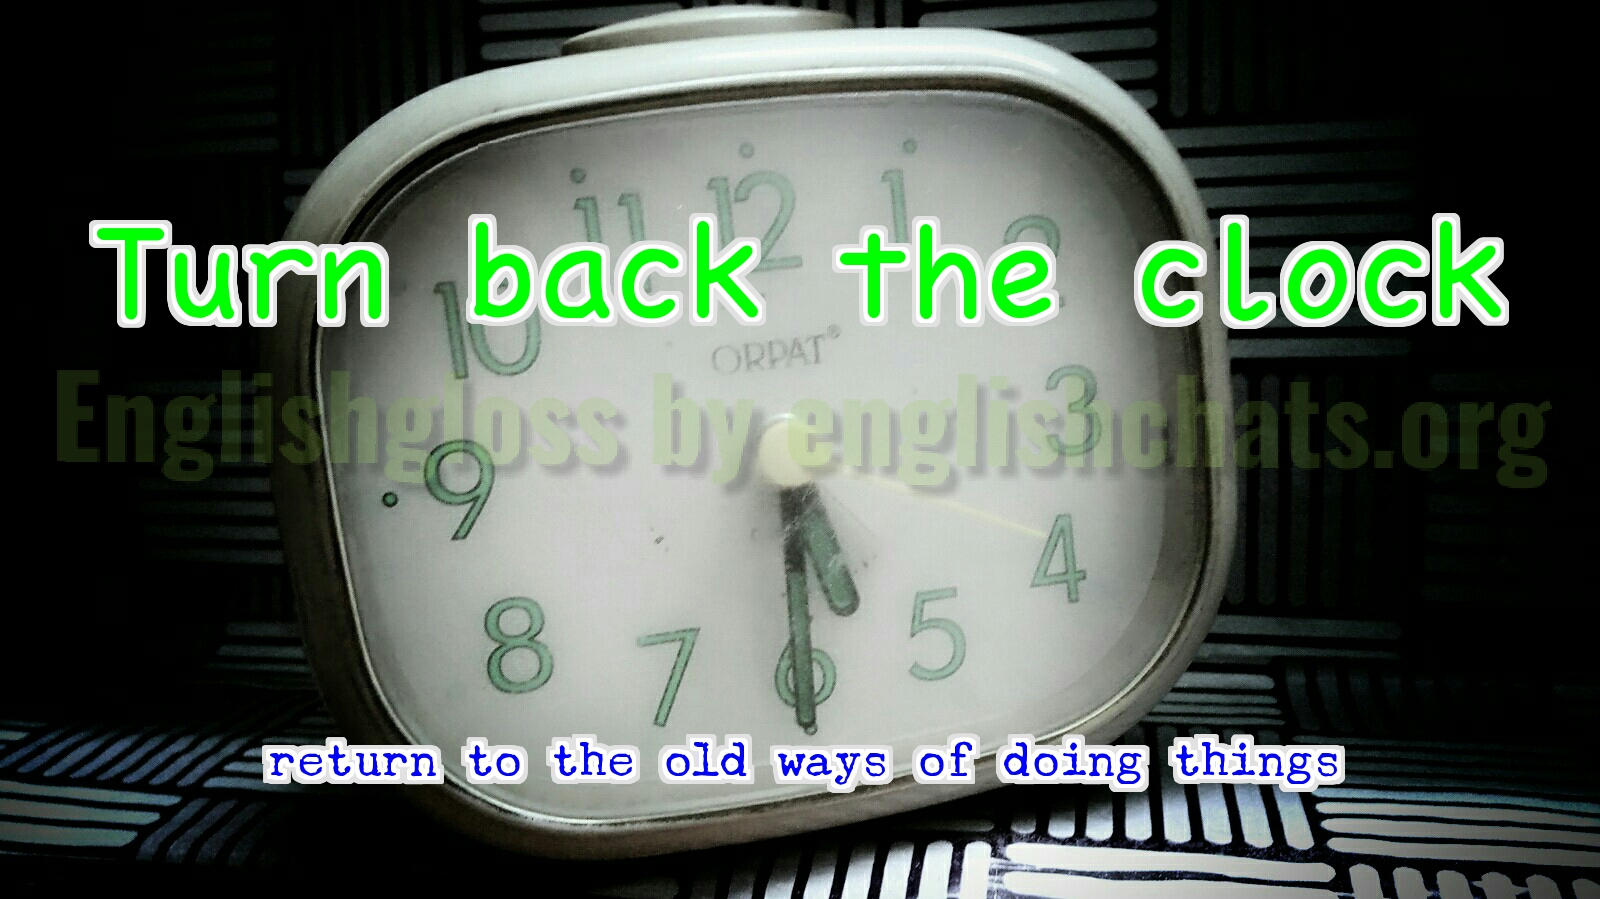 Idiom- Turn back the clock